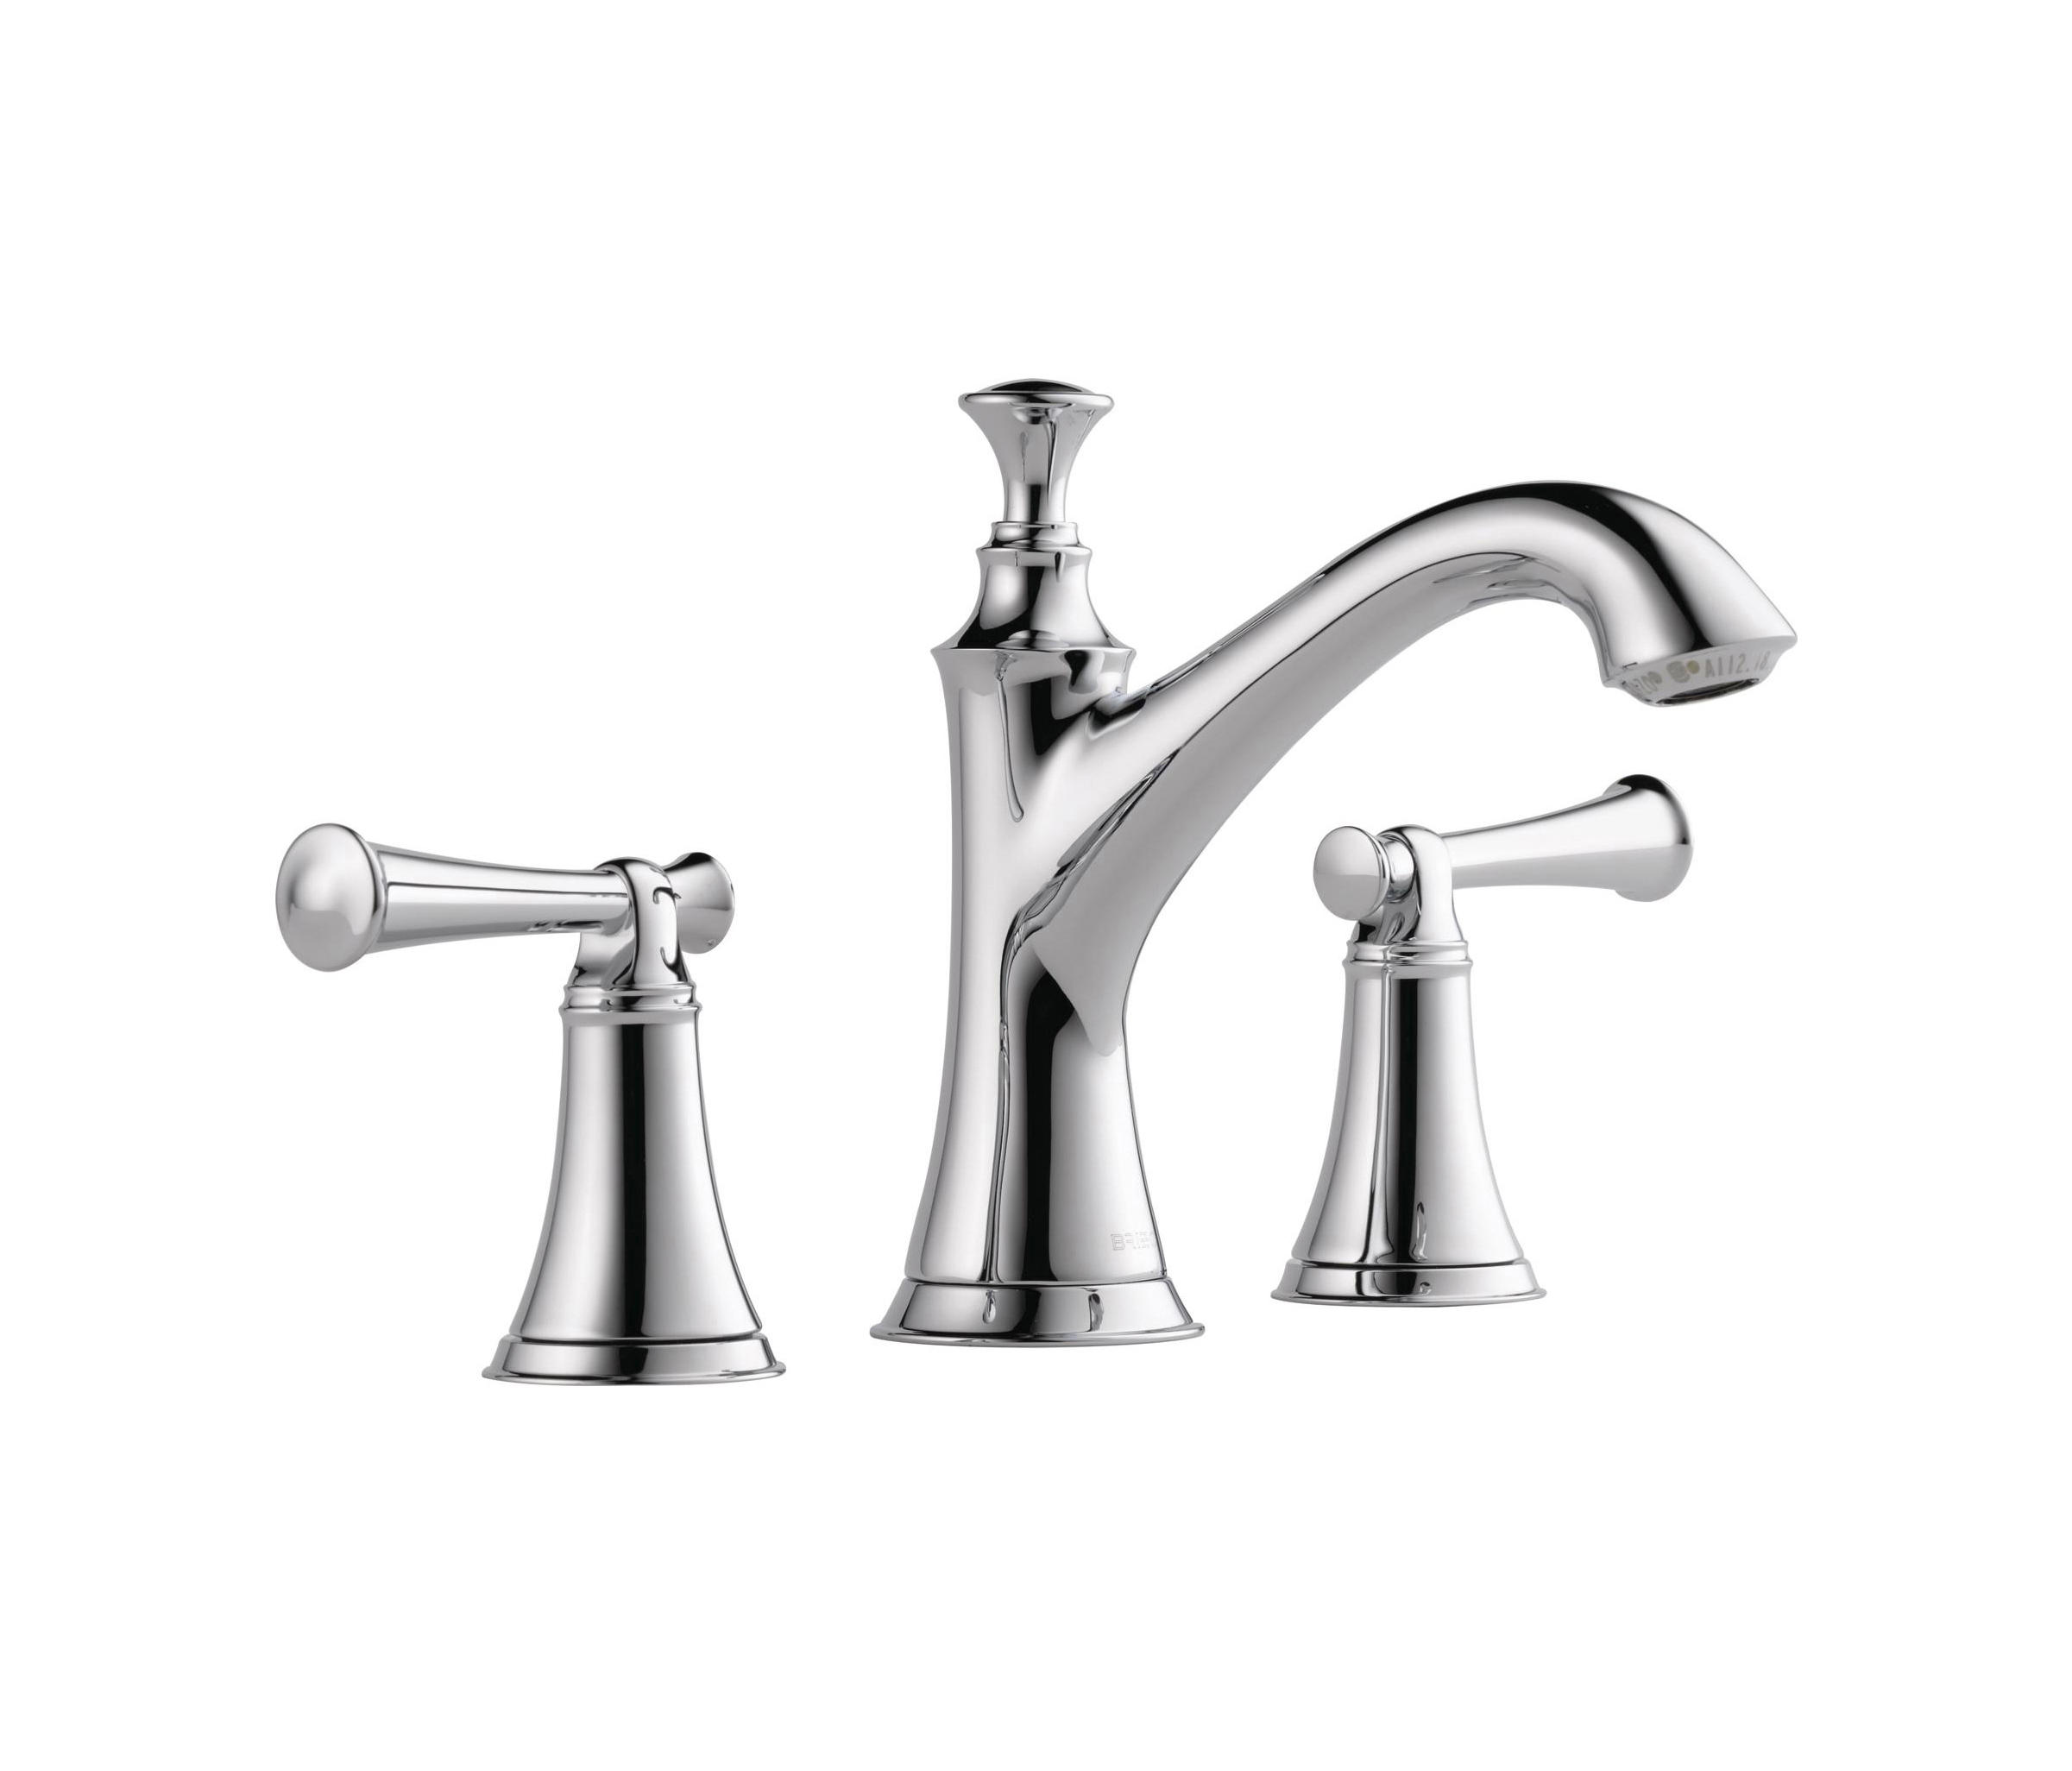 Widespread With Lever Handles By Brizo Wash Basin Taps